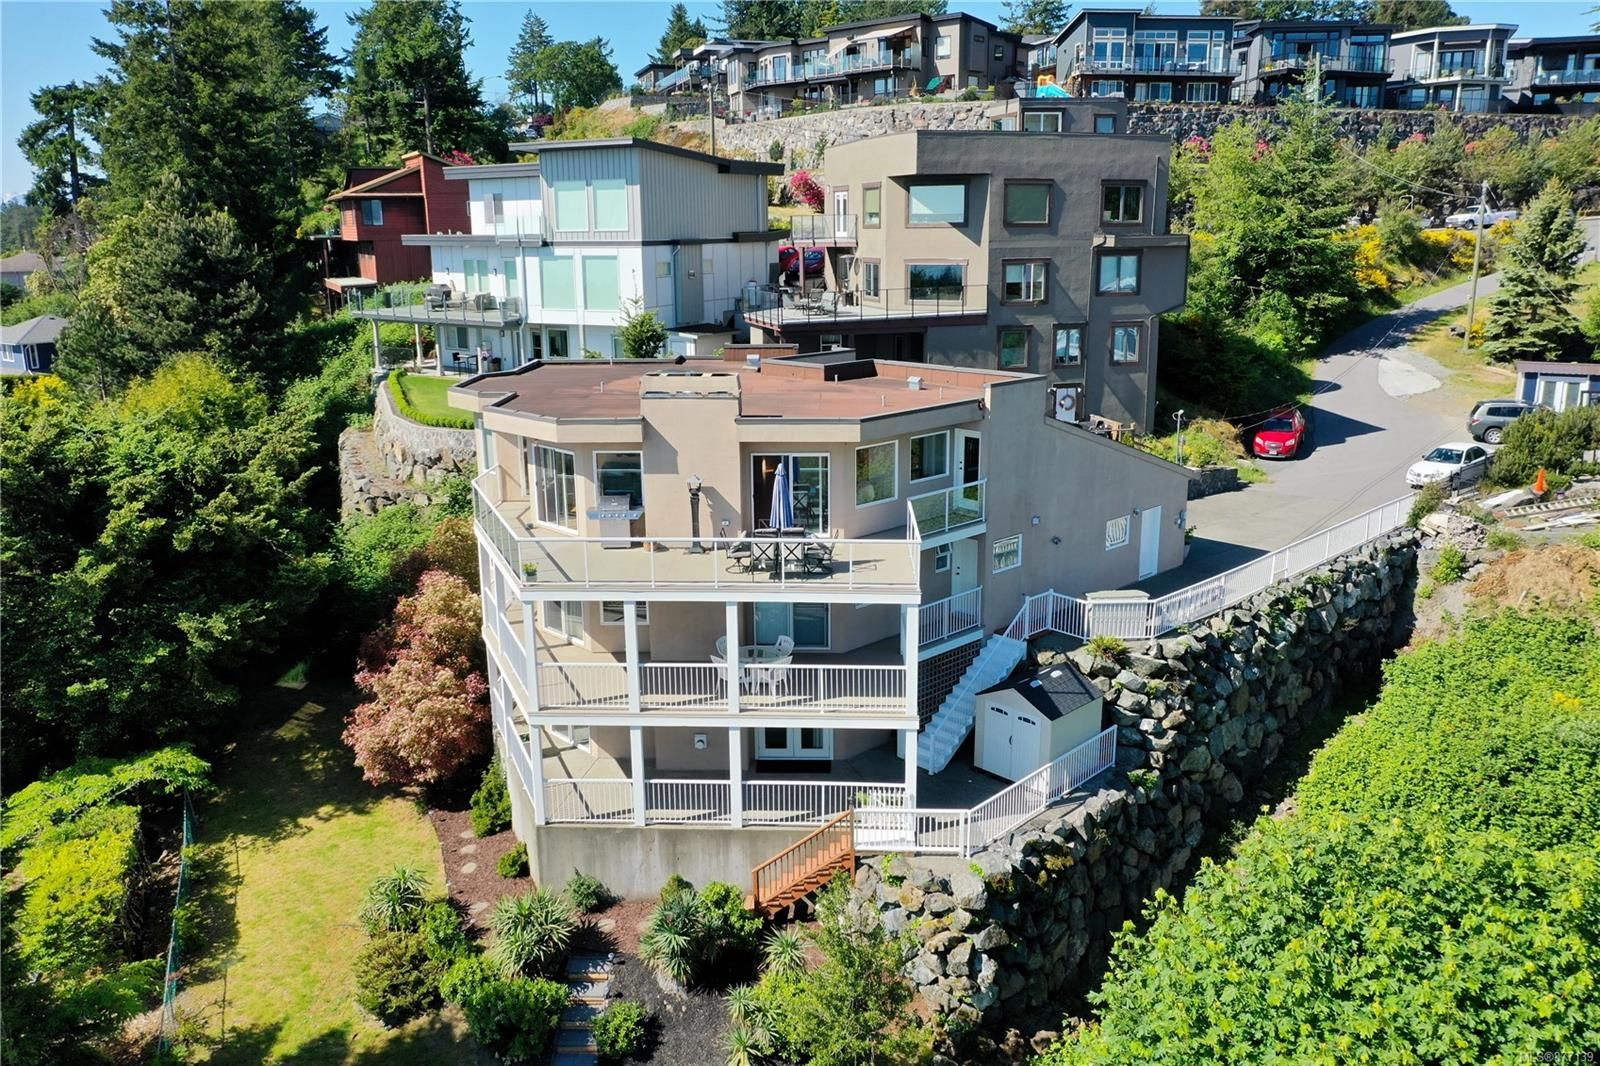 Main Photo: 3409 Karger Terr in : Co Triangle House for sale (Colwood)  : MLS®# 877139